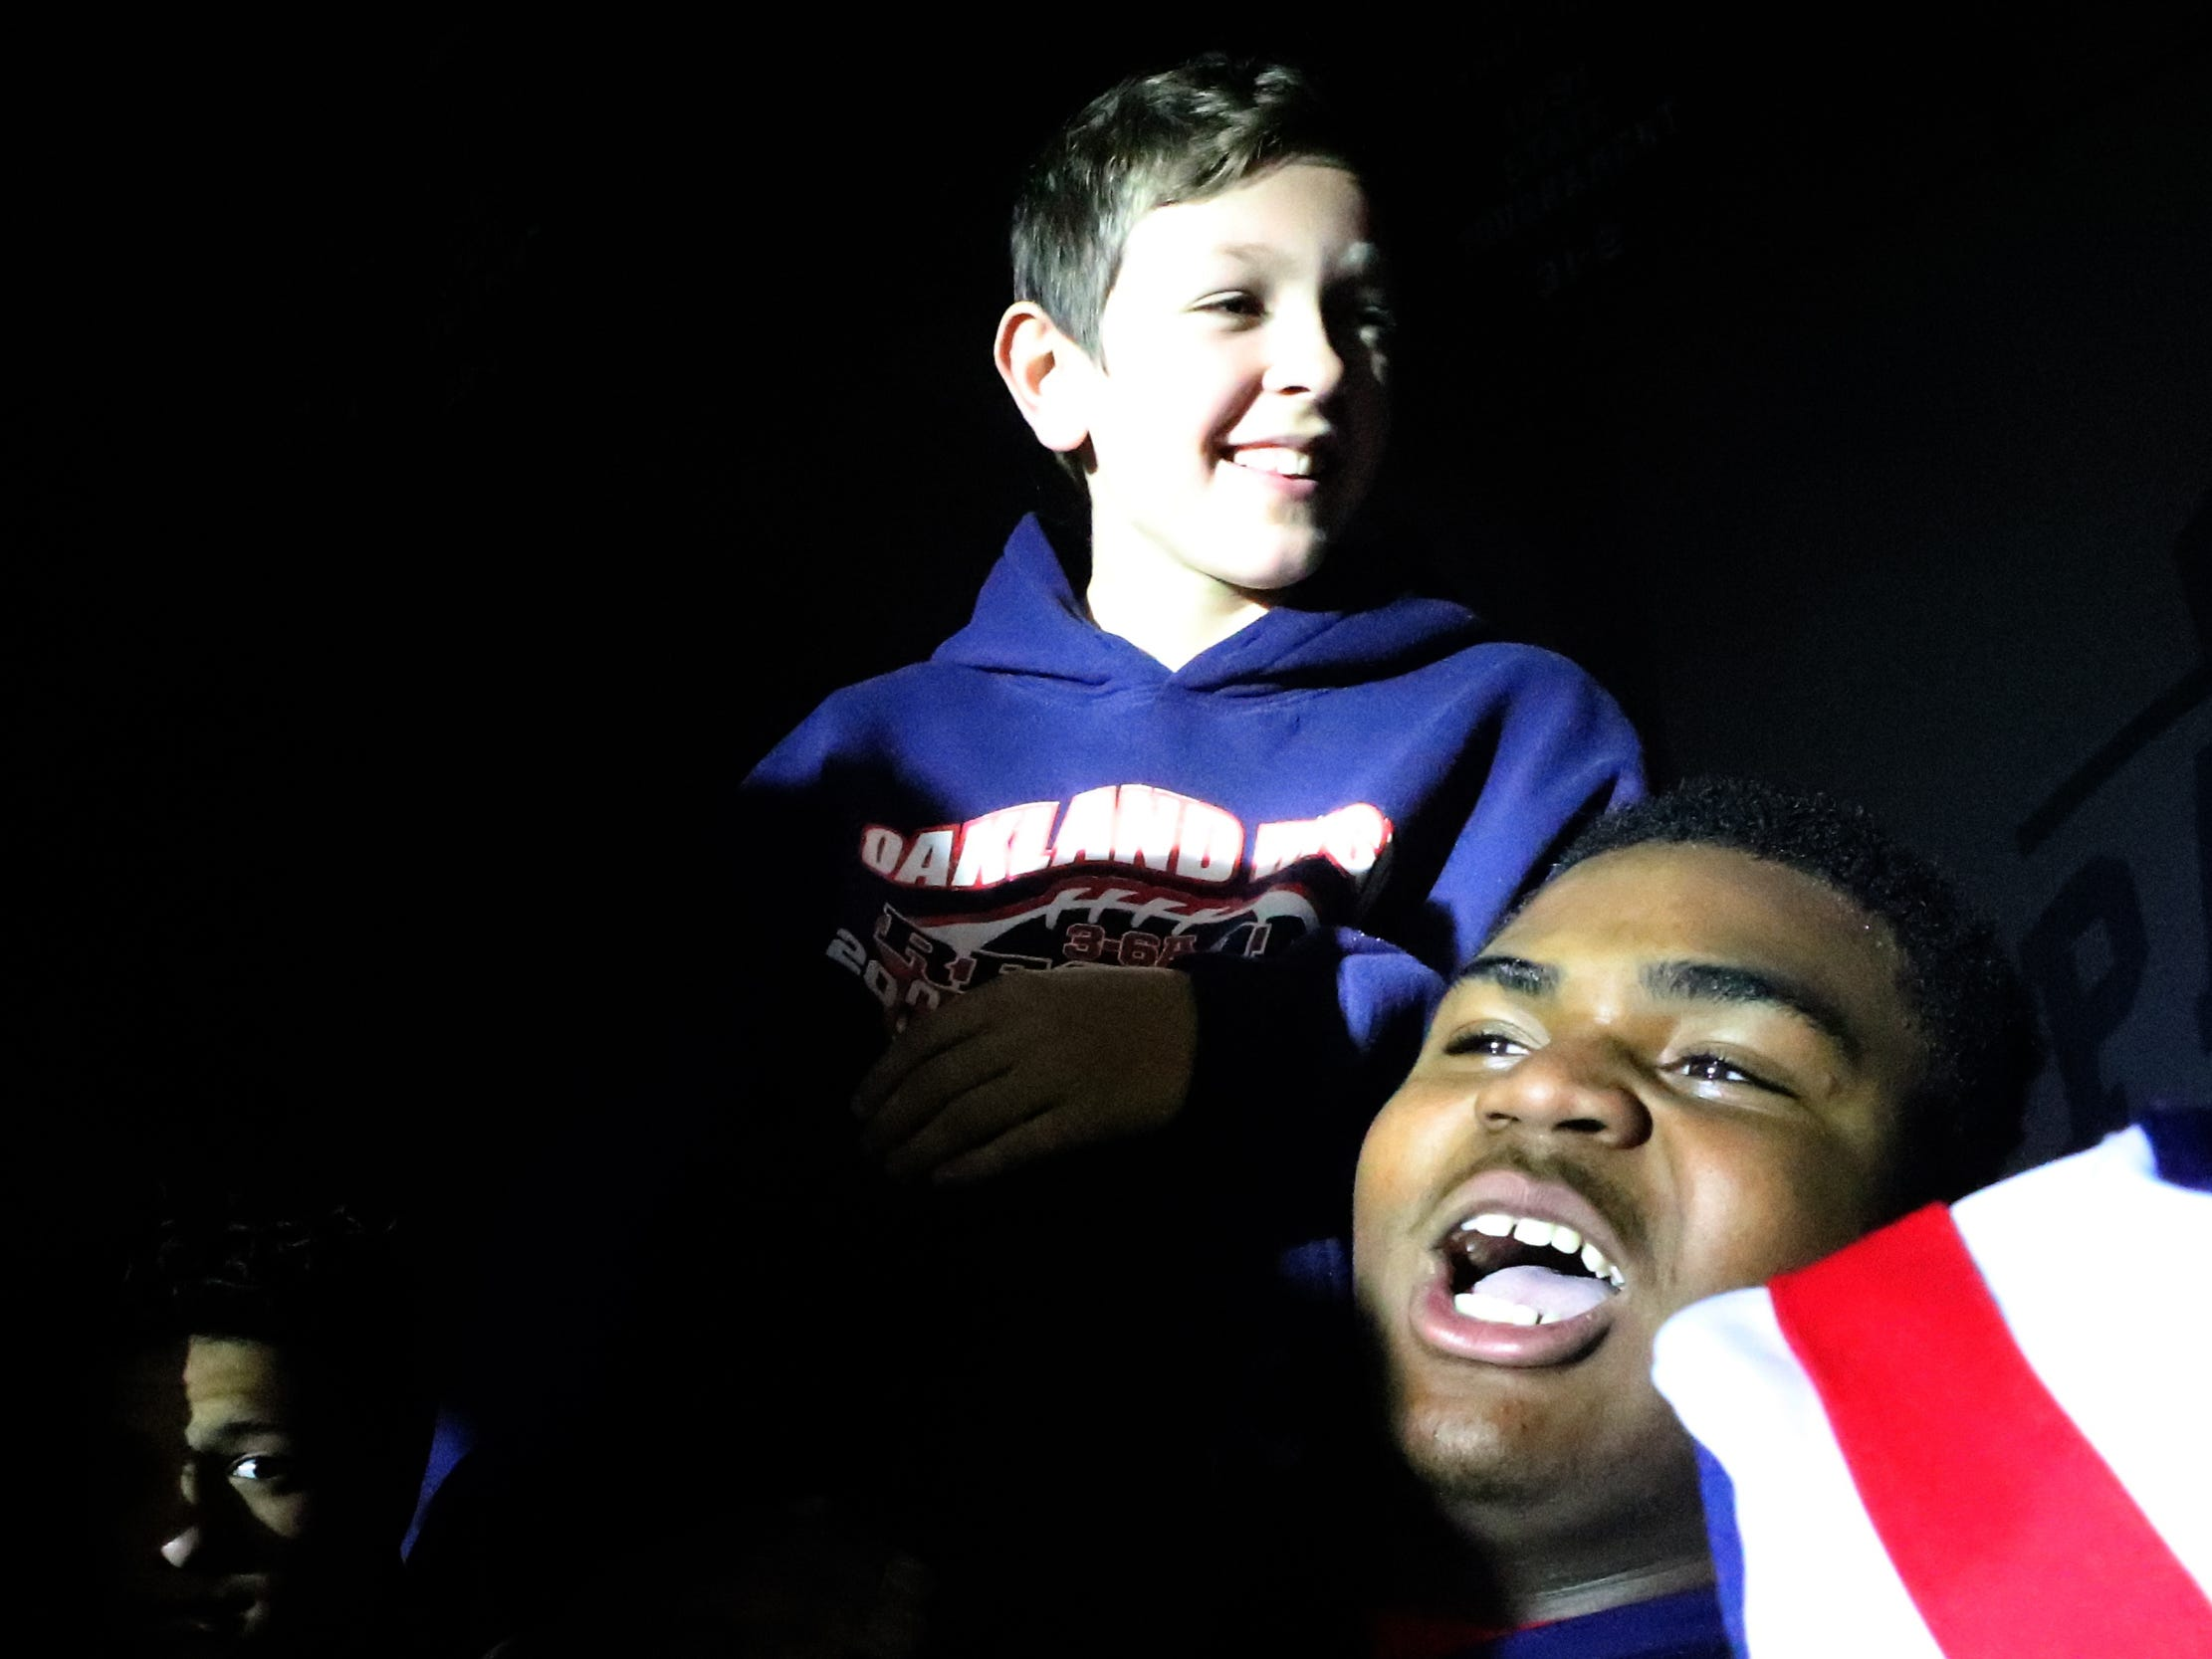 Oakland High School Kylan Spencer (99) holds up Kyler Creasy, the son of the football head coach Kevin Creasy, during a pep rally, on Monday, Dec. 3, 2018 at the school after the football team won the 6A State Championship BlueCross Bowl game against Westhaven on Thursday.